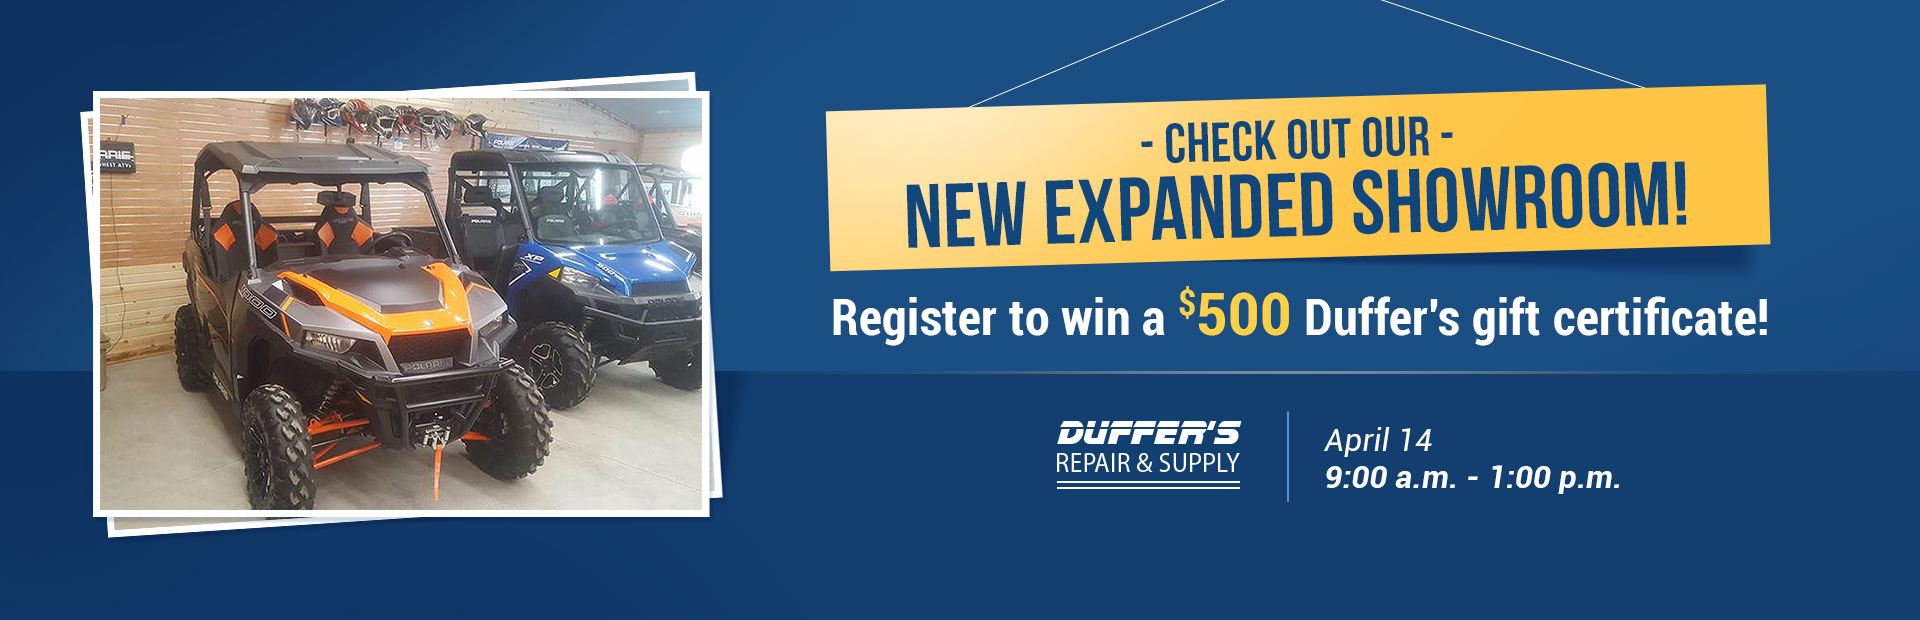 Check out our new expanded showroom on April 14 and register to win a $500 Duffer's gift certificate!